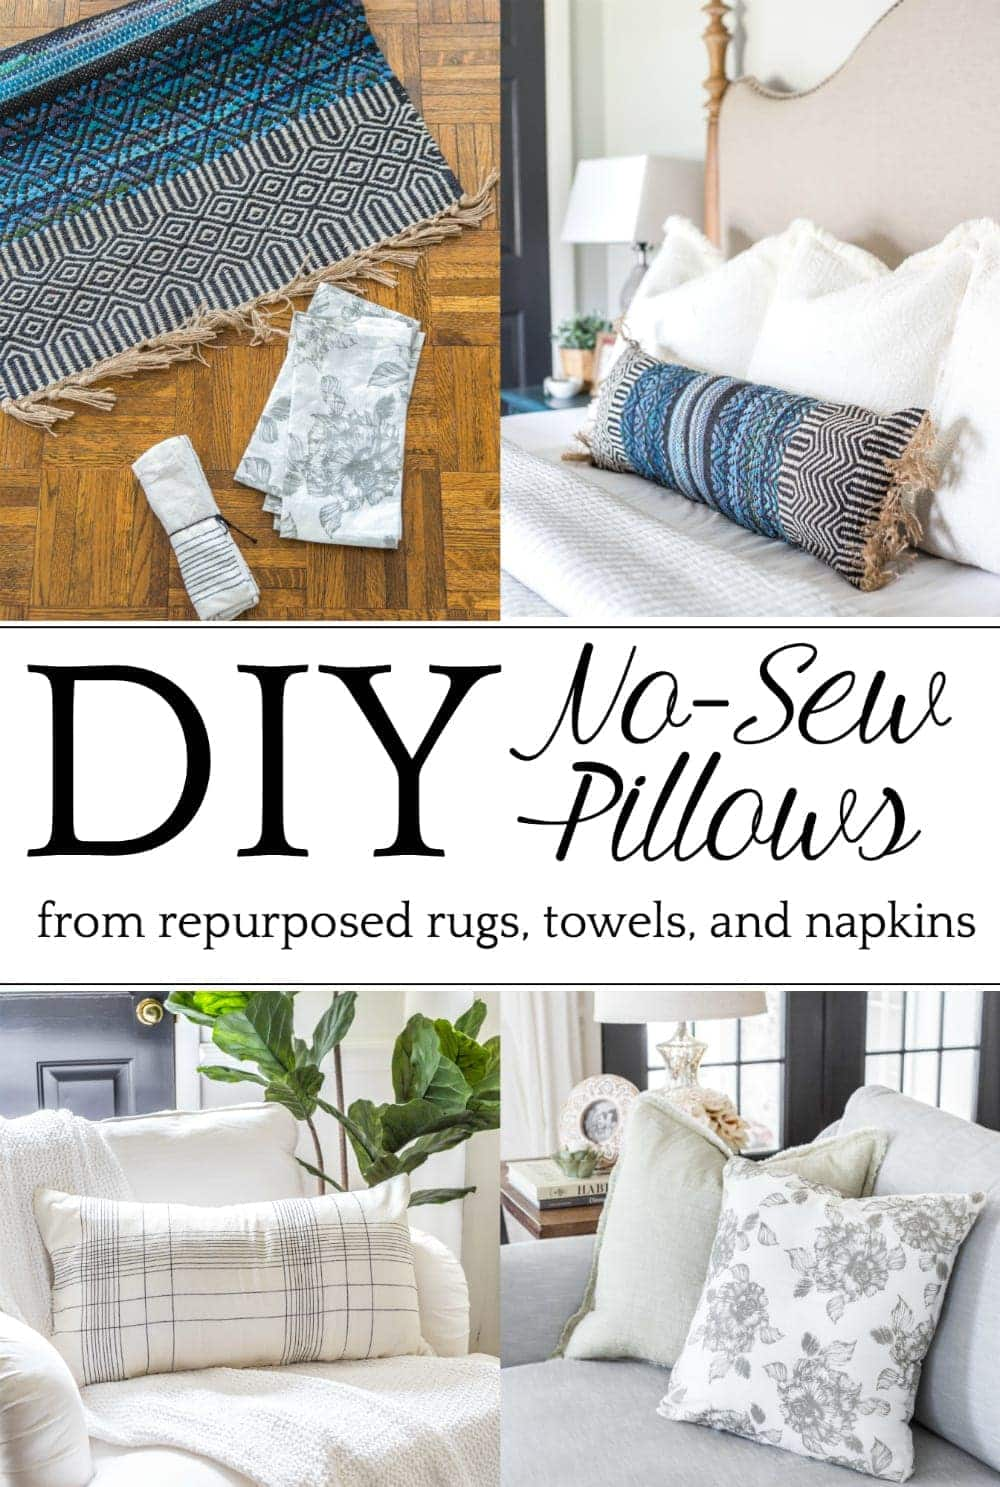 Swell 3 Items You Can Repurpose Into Diy Throw Pillows Blesser Inzonedesignstudio Interior Chair Design Inzonedesignstudiocom